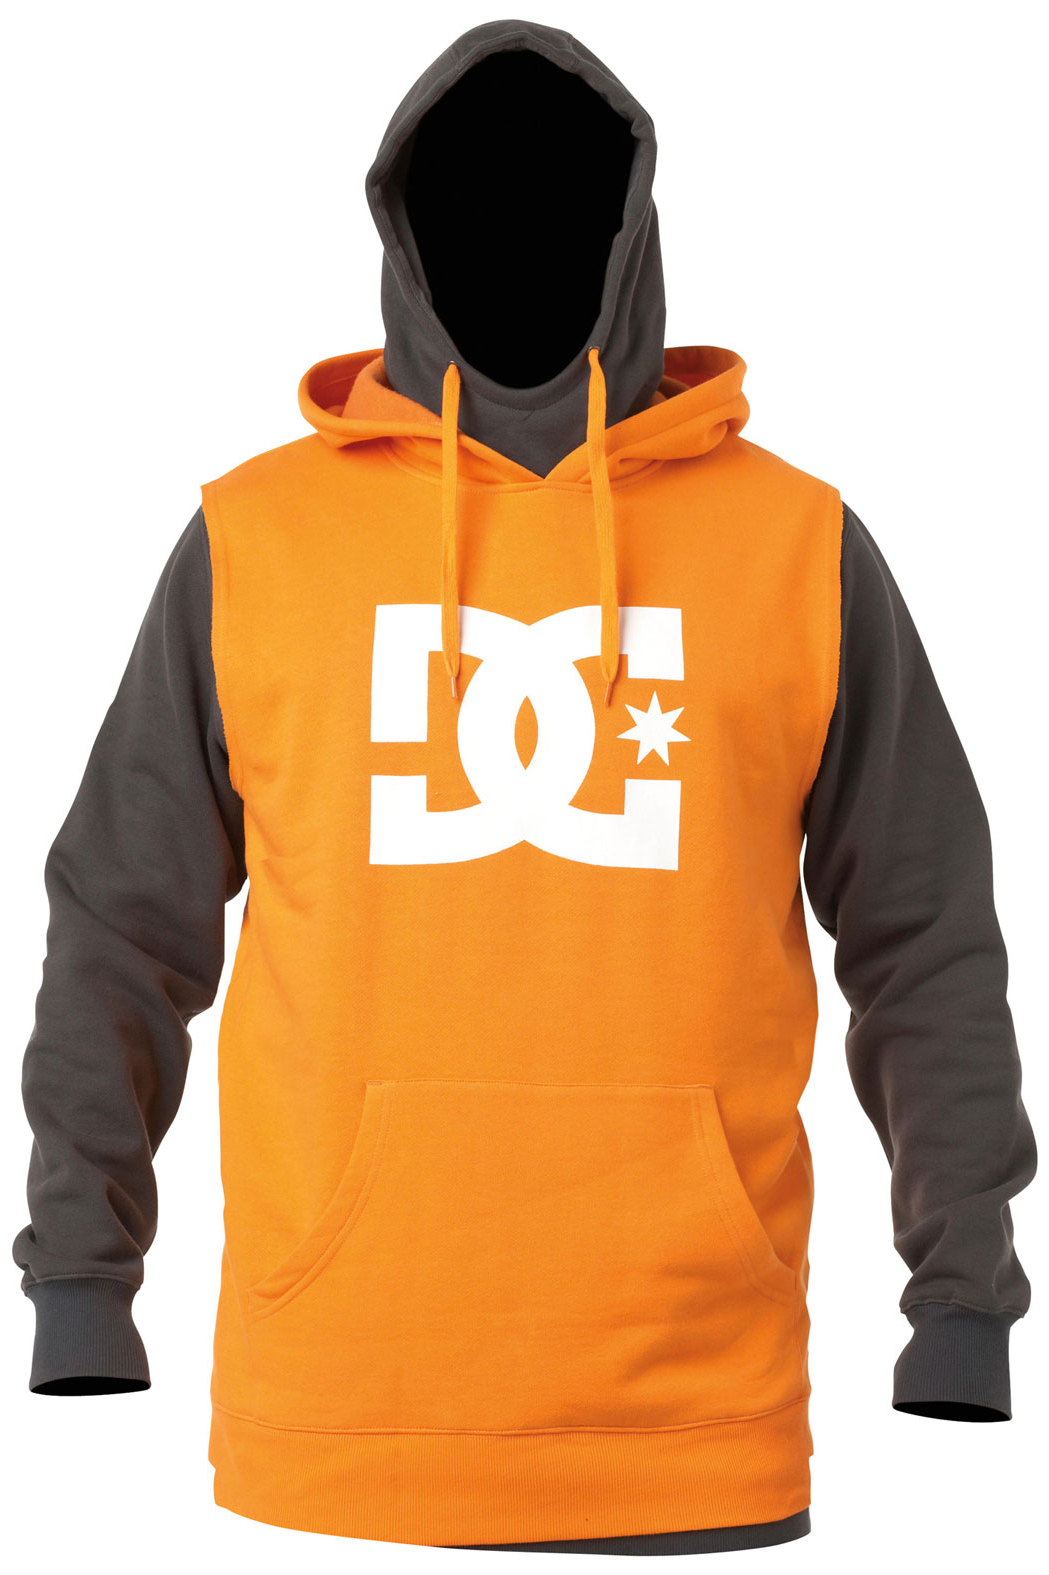 Skateboard Water repellent fleece with double layered hood and body, thumb hole cuffs, screen print logo, rib thumb hole cuffs, and media pocket.Key Features of the DC Dryden Hoodie: Fit: long fzh 60/40 cotton polyester 340g fleece - $85.00